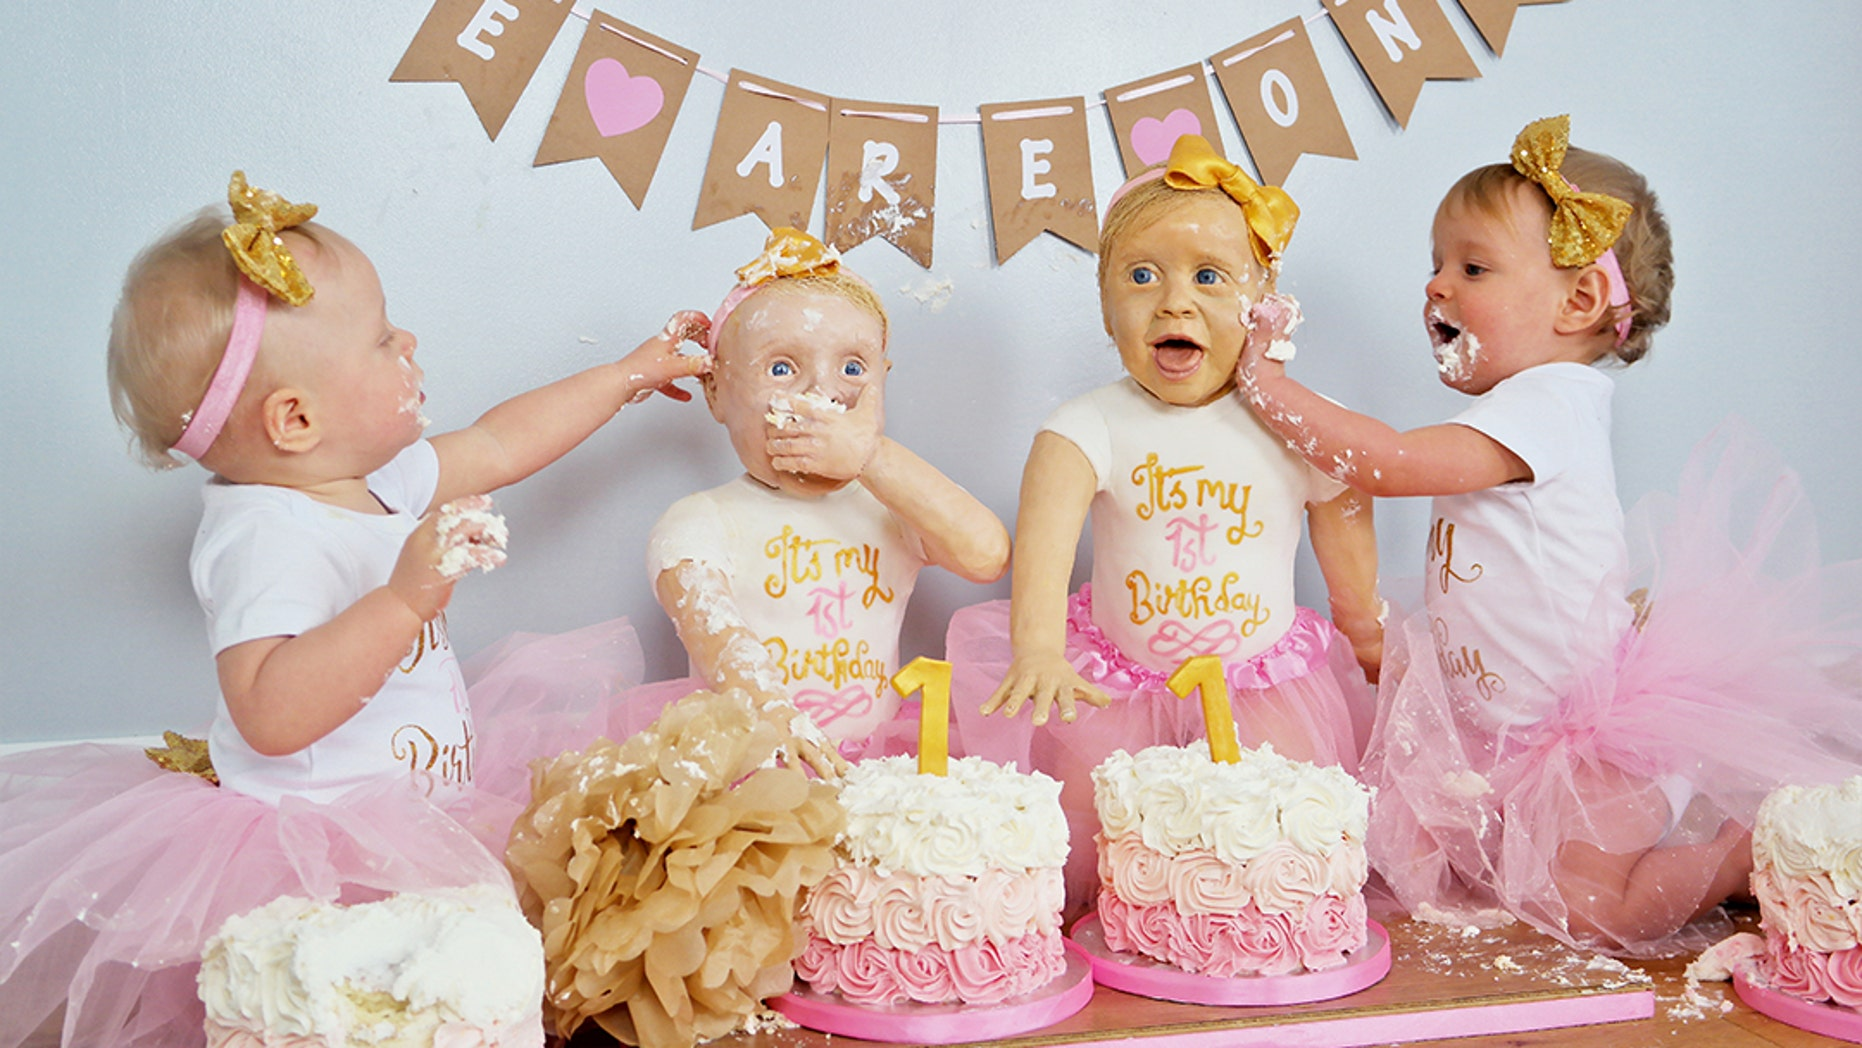 Baker Created Life Sized Cakes Of Twin Daughters For First Birthday